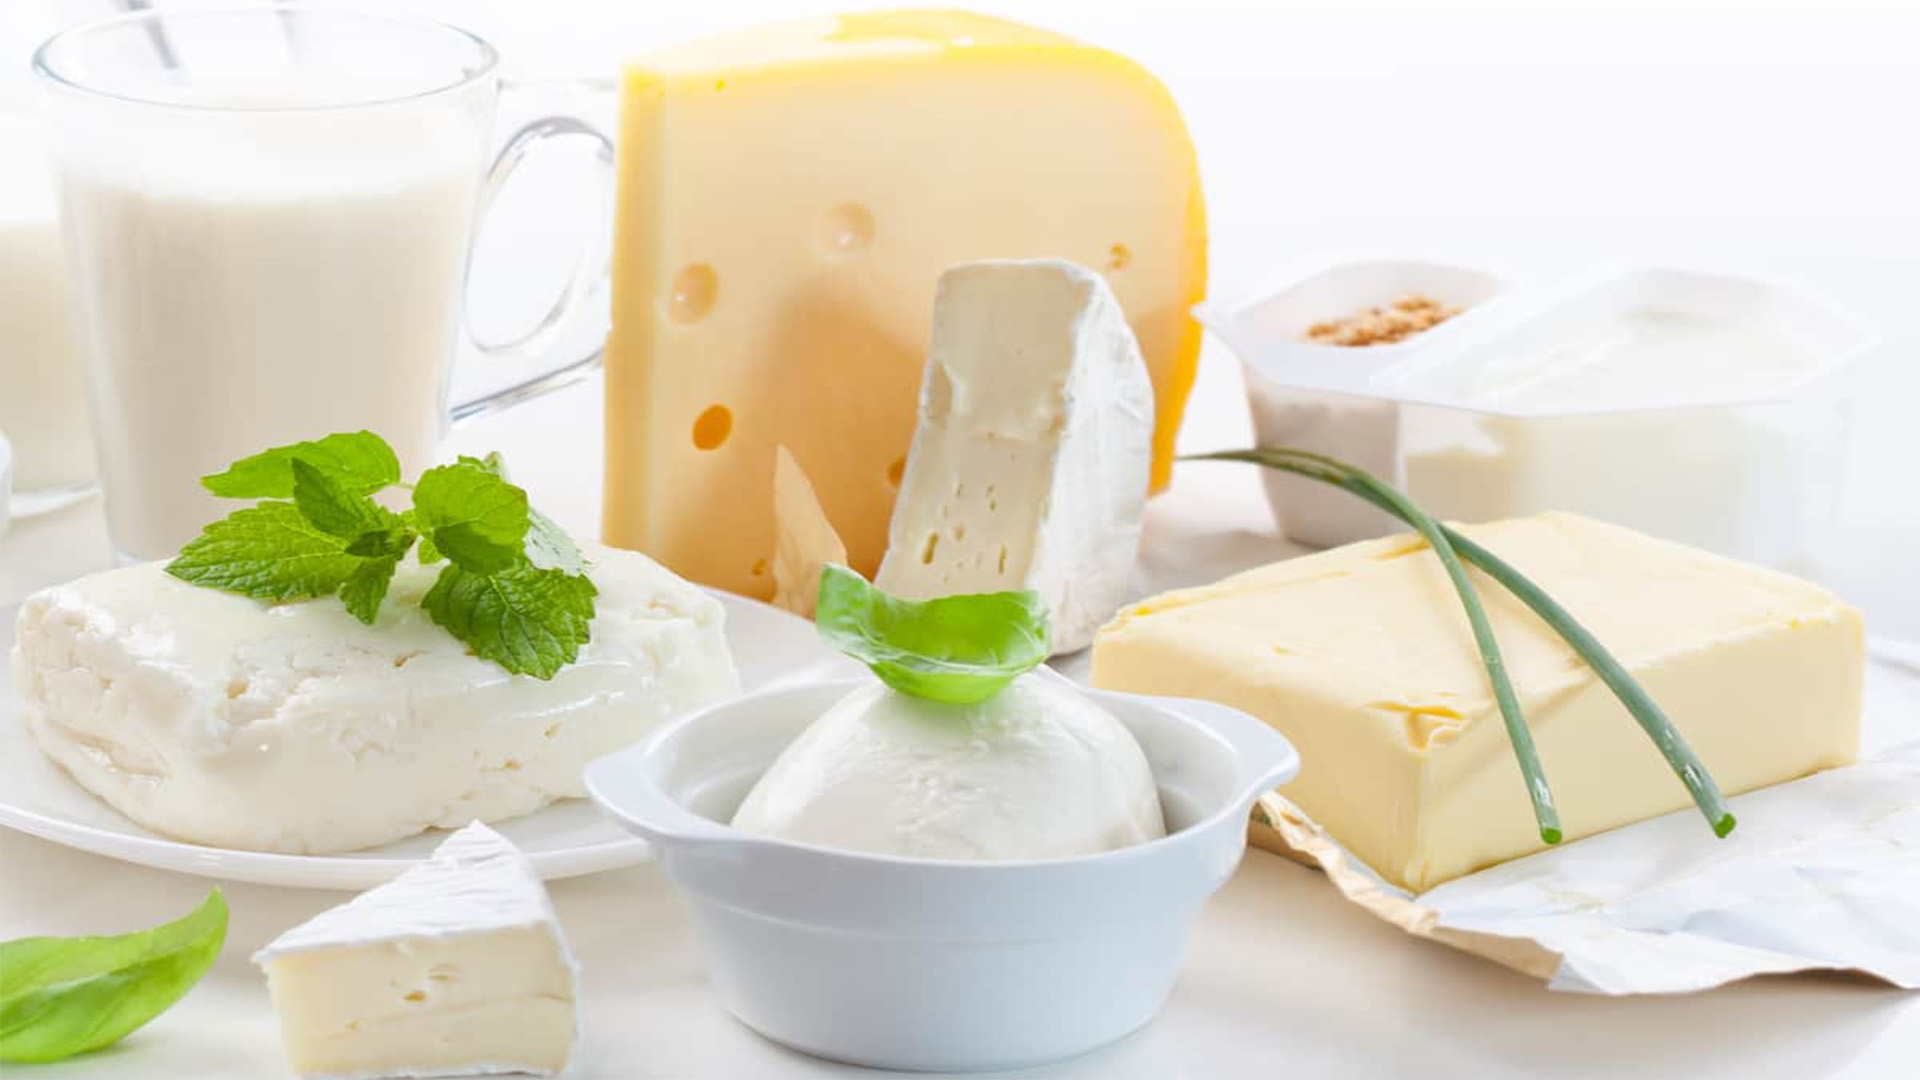 Cheese & Butter Cold Room